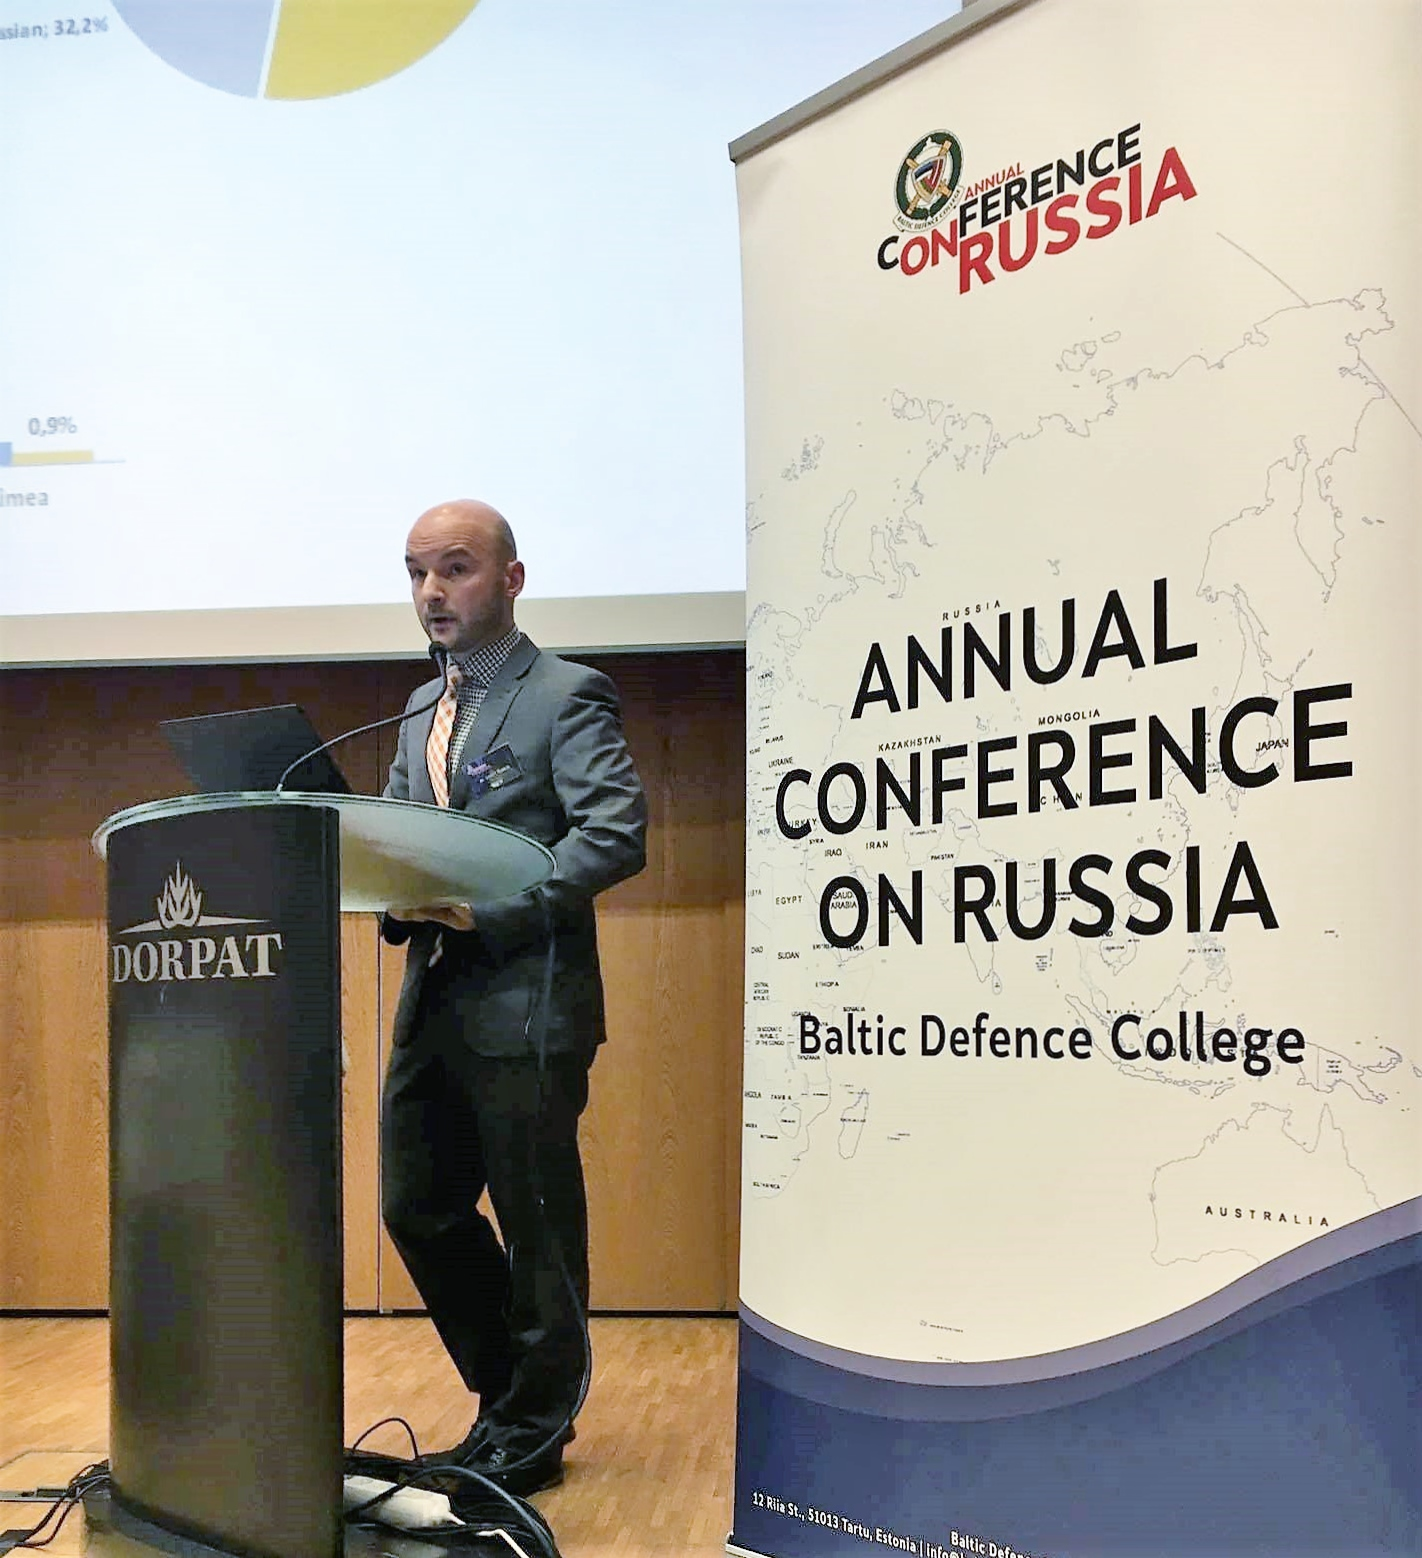 Image for Dmitri Teperik at the BALTDEFCOL Annual Conference on Russia 2017